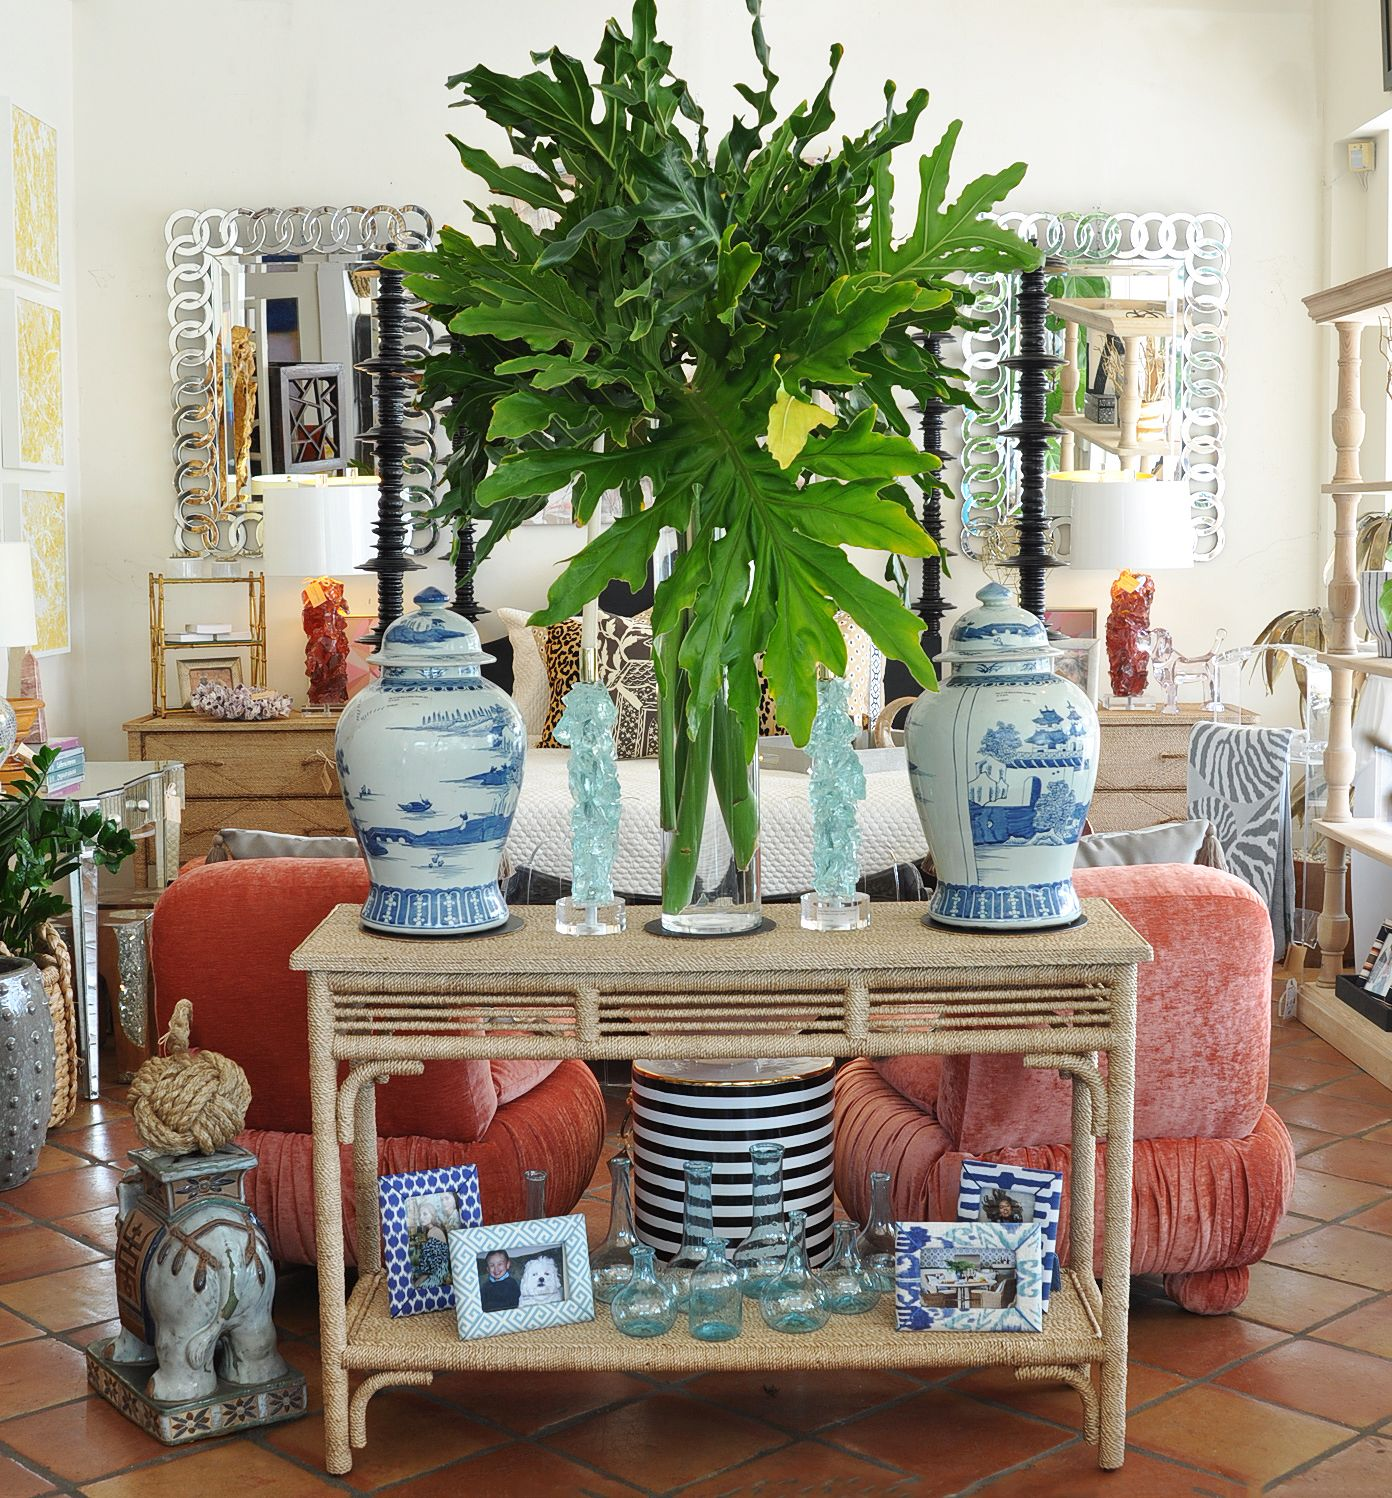 Ginger jars and striped accessories at Mecox Palm Beach #interiordesign #home #decor #design #MecoxGardens